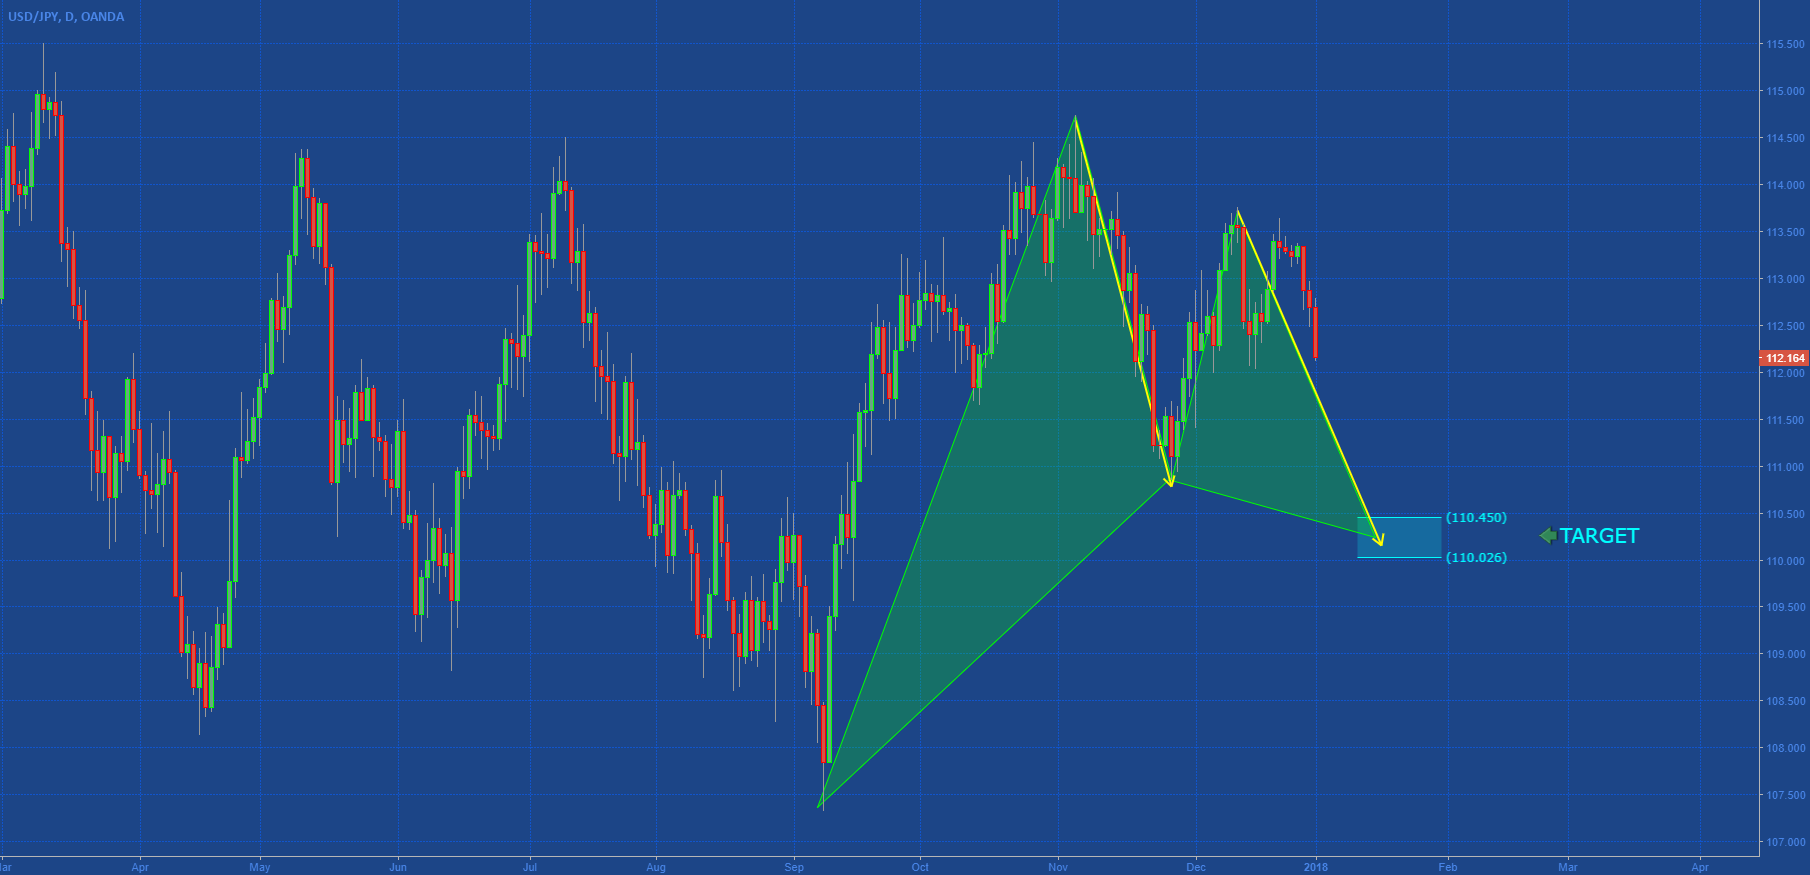 [USDJPY] POTENTIAL HARMONIC STRUCTURE IN PLAY....